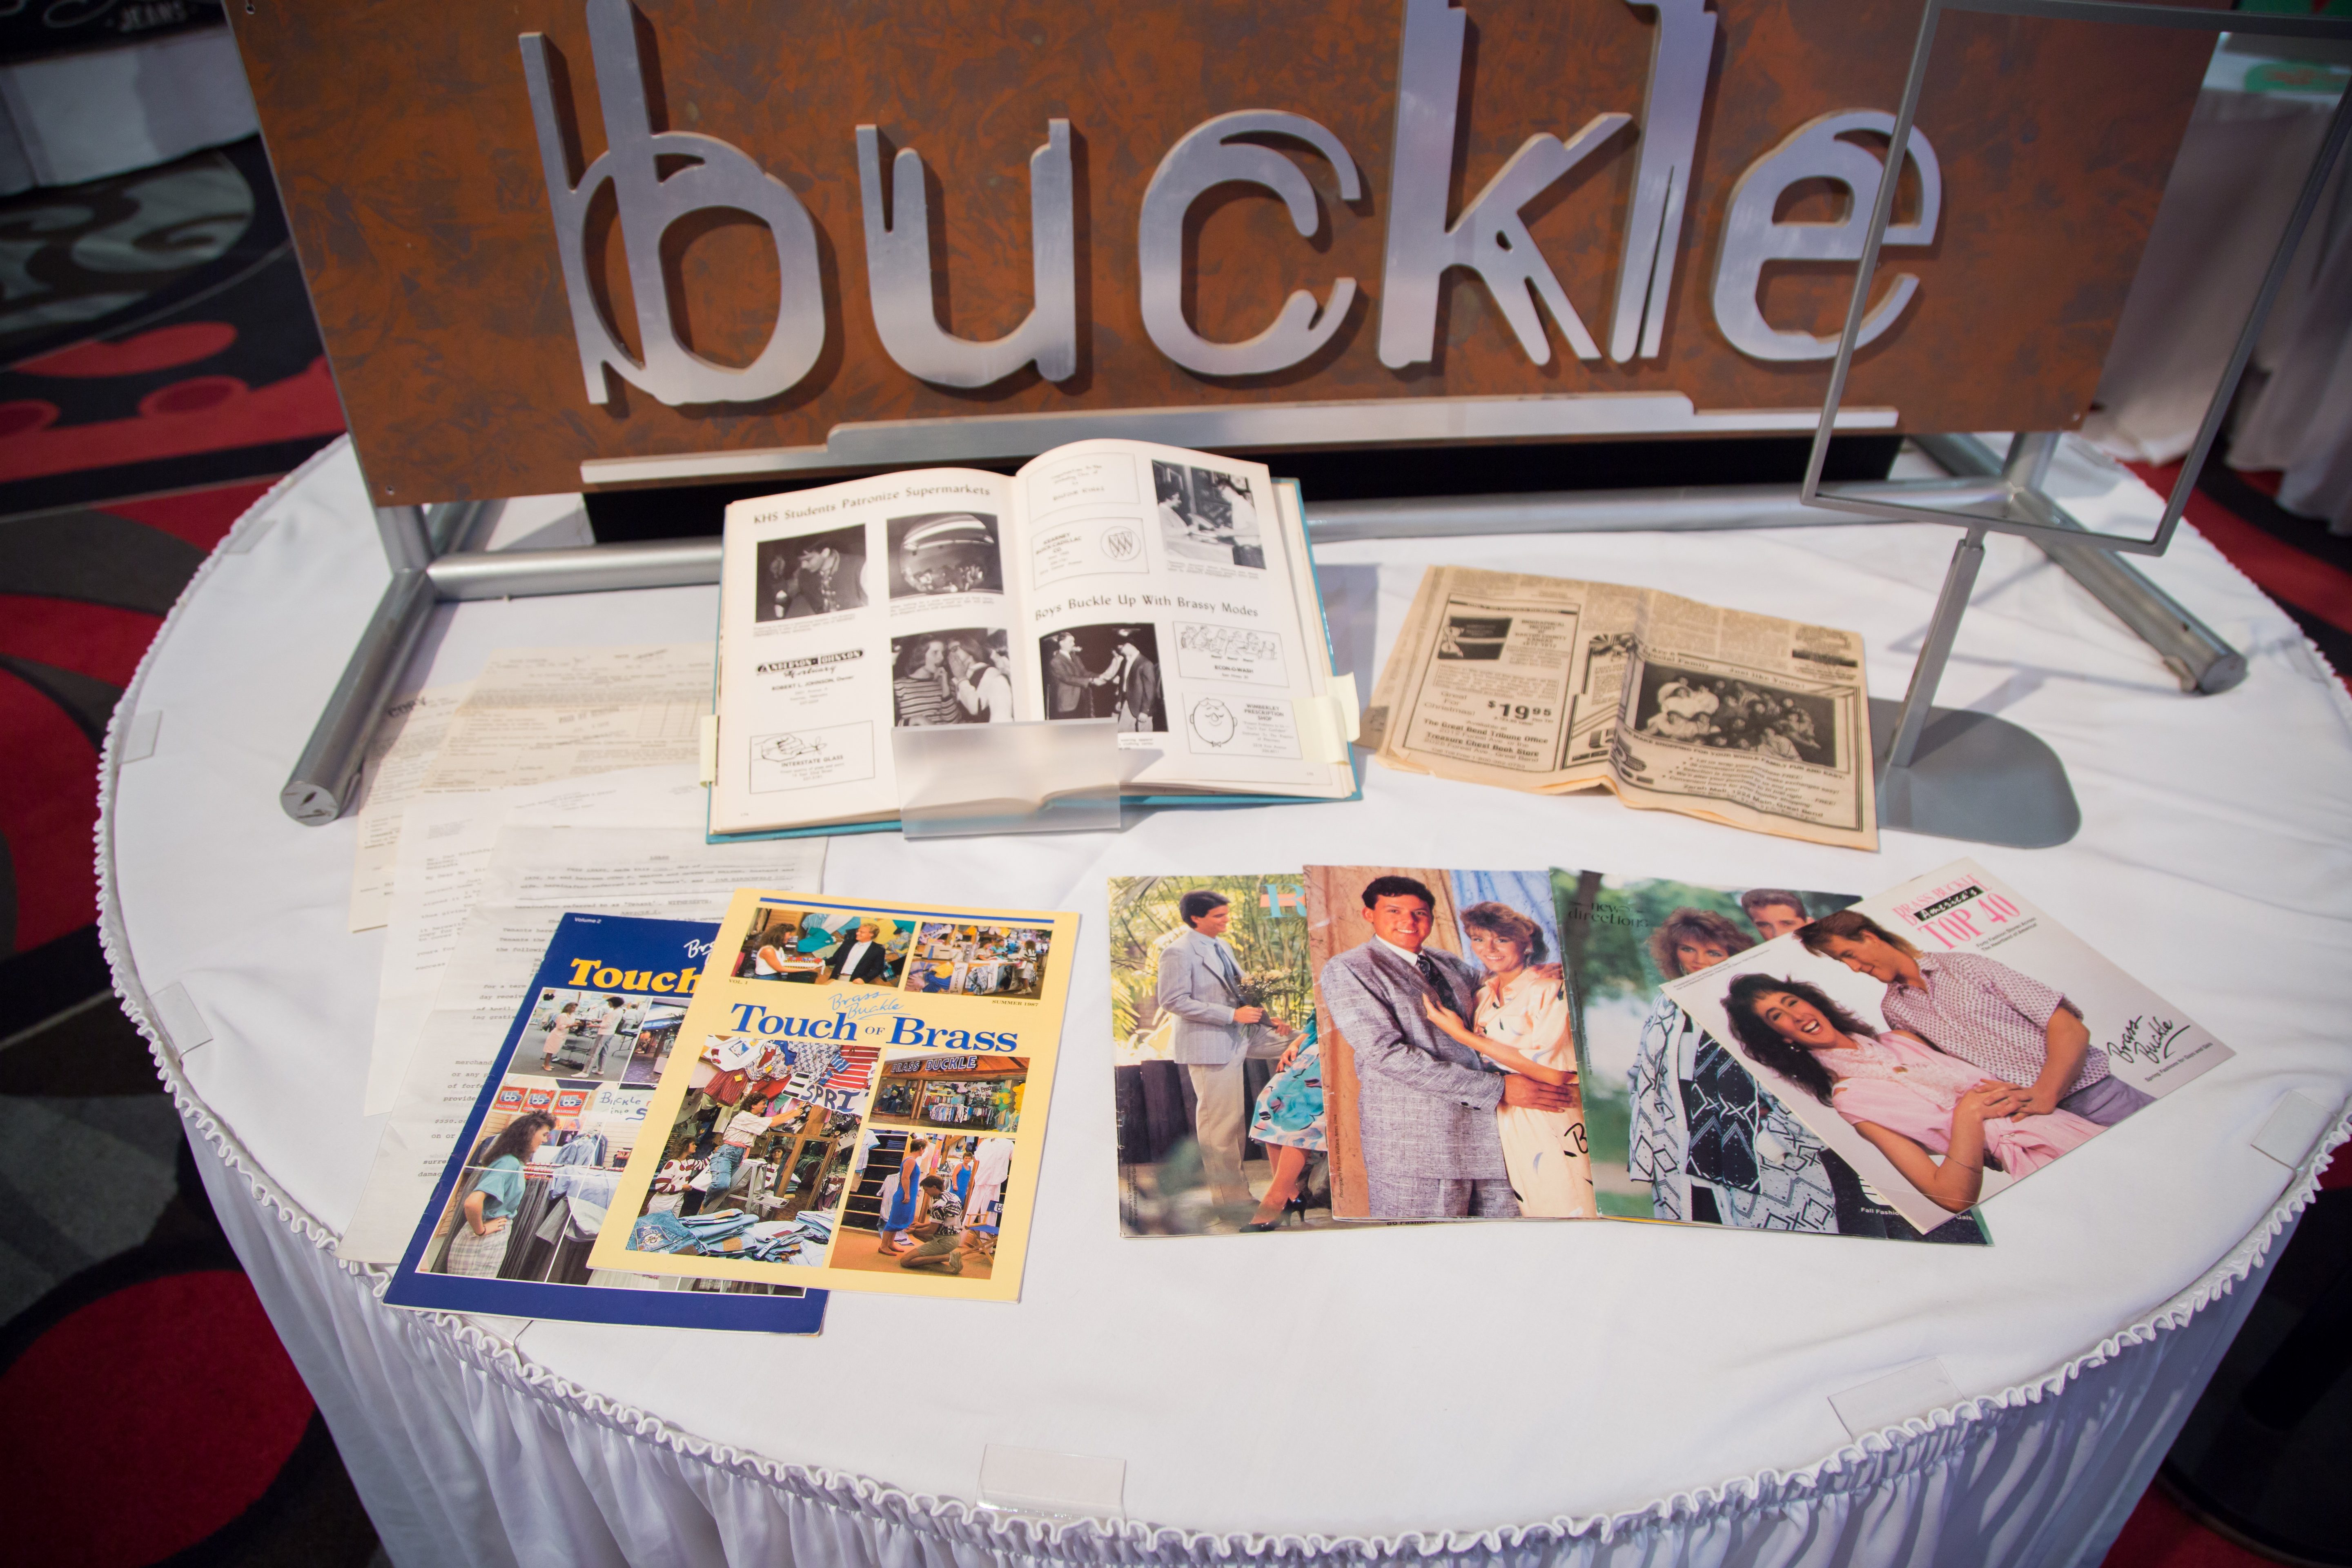 Buckle's 50th Anniversary Museum | Magazine articles from the past.